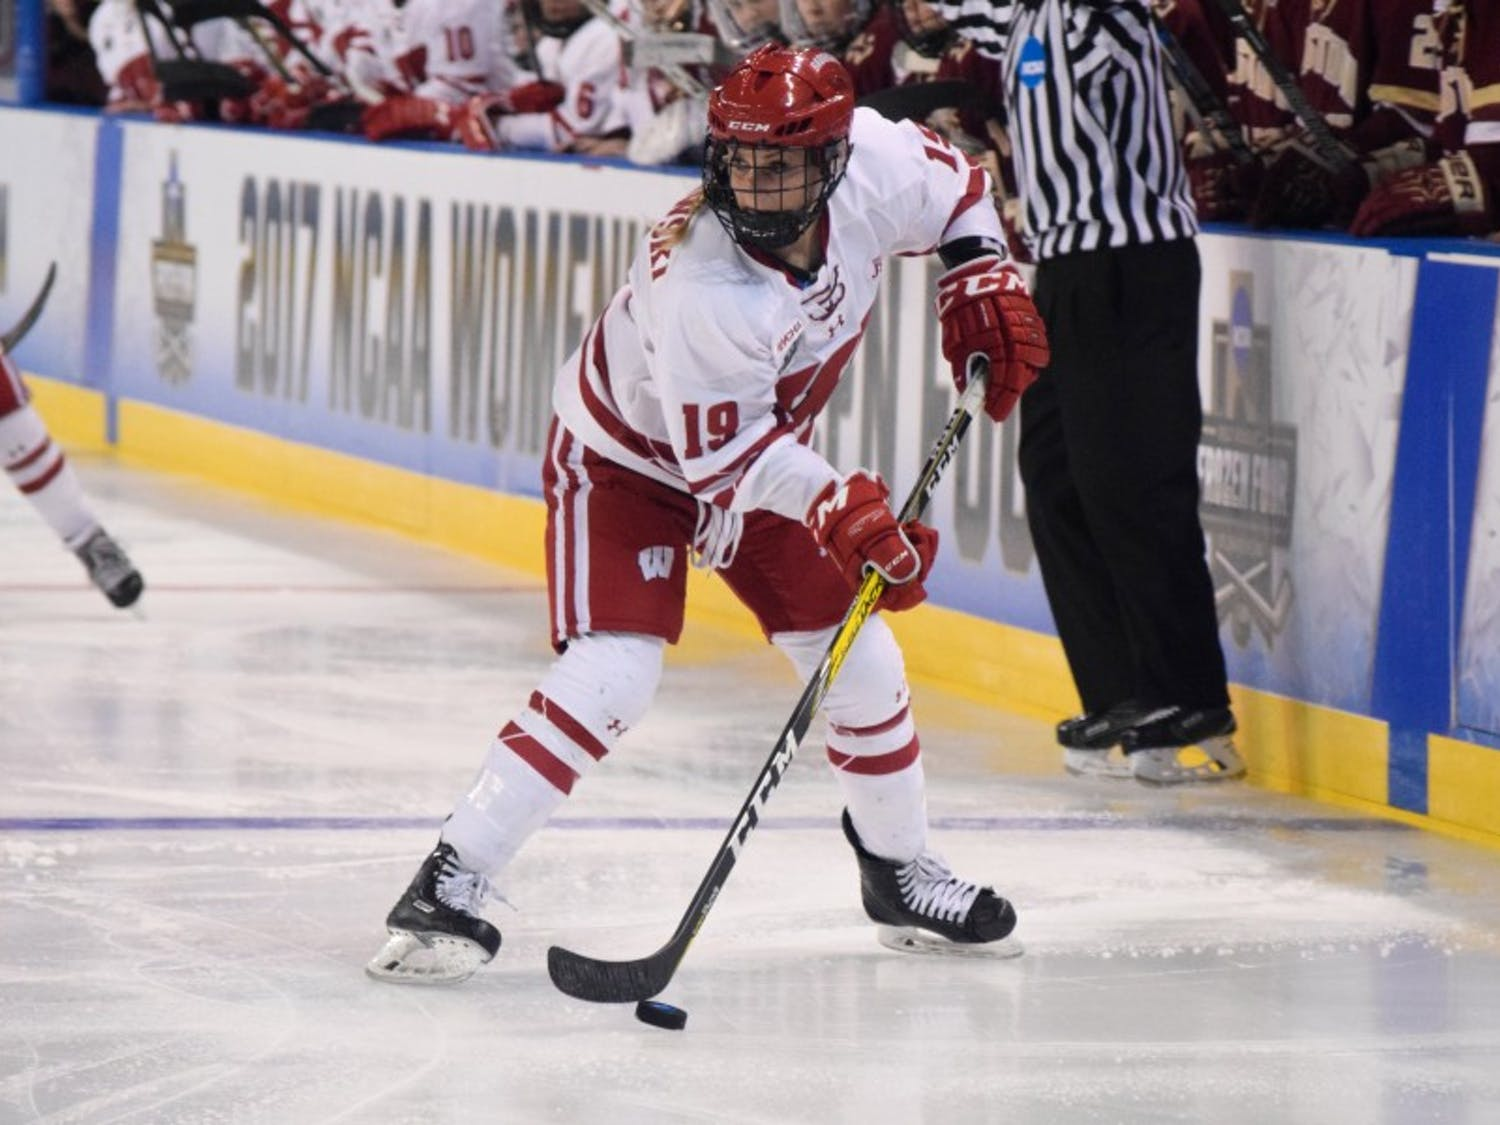 Senior forward Annie Pankowski moved from right wing to center — after losing Emily Clark to an injury — and responded with three points in two games last weekend.